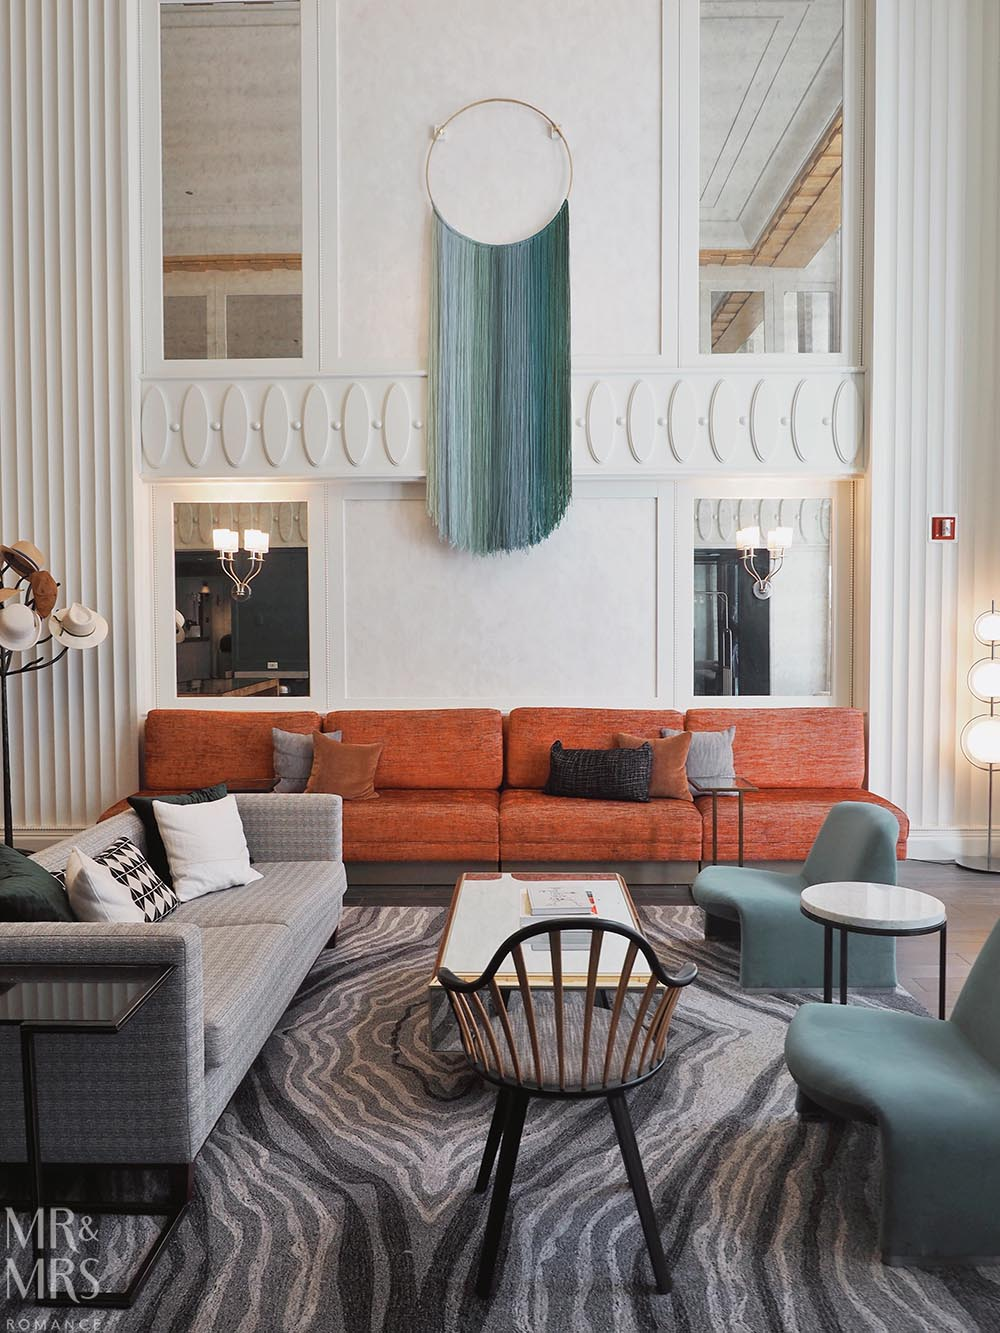 Where to stay in Chicago - Kimpton Hotel Monaco Chicago - lounge/lobby